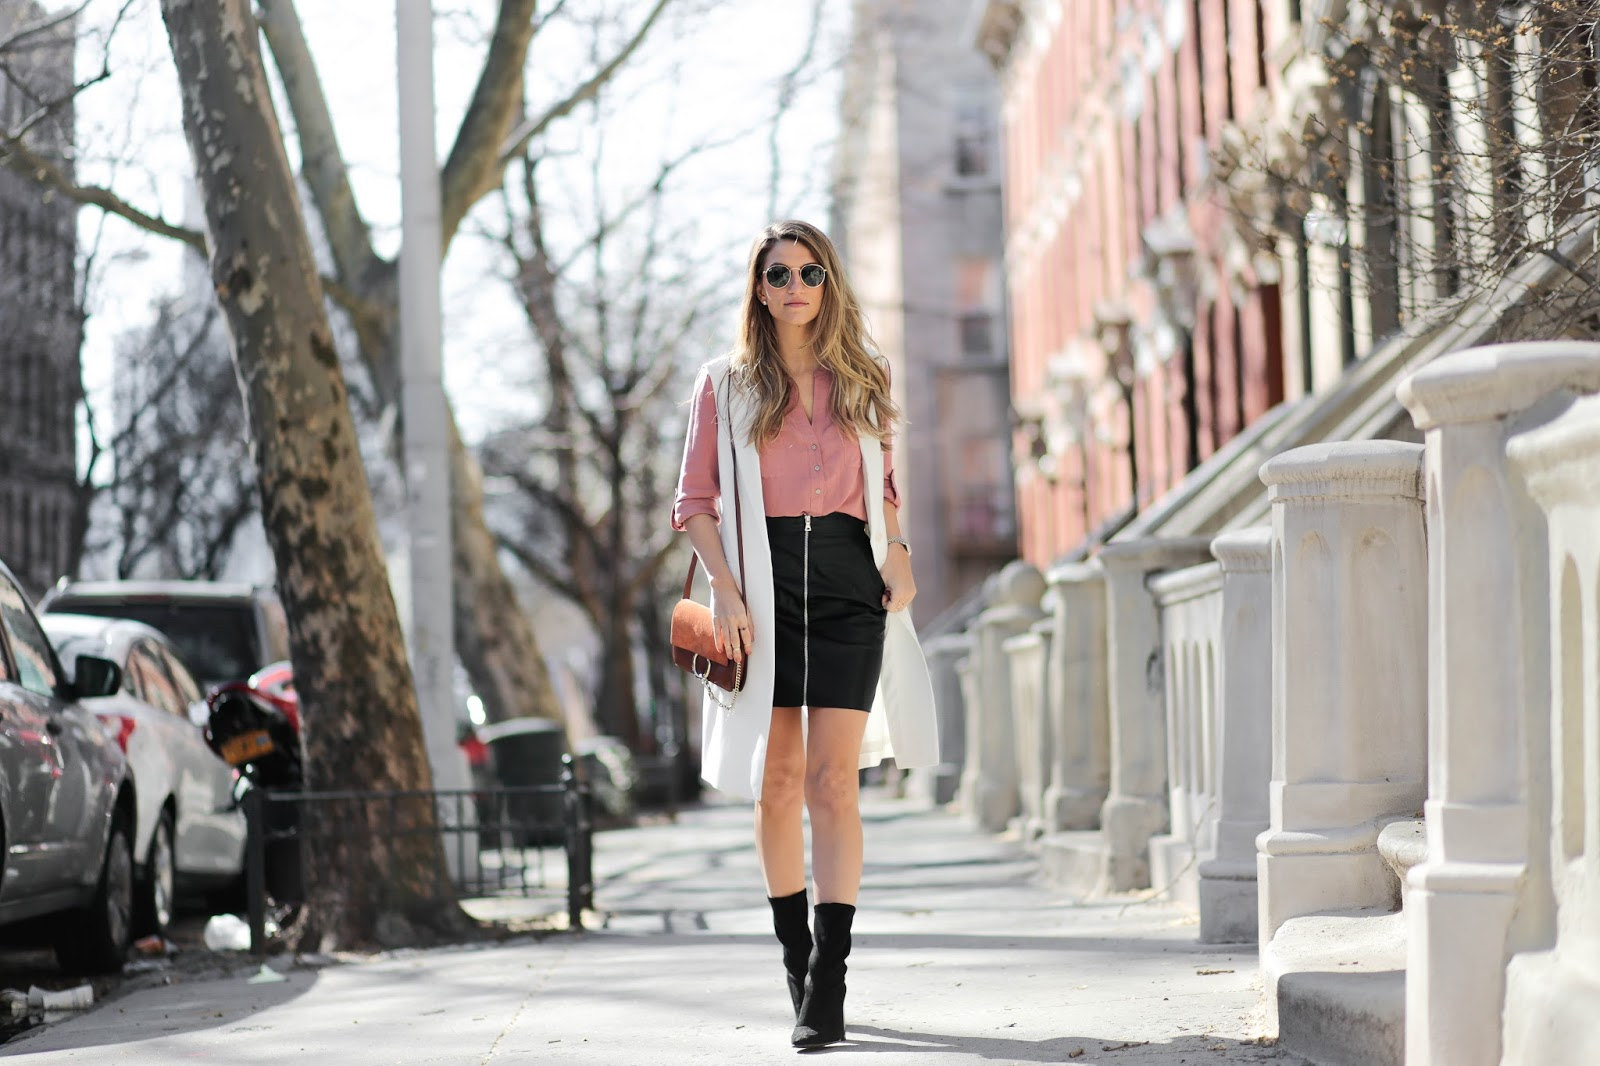 west village street style, dressed for dreams